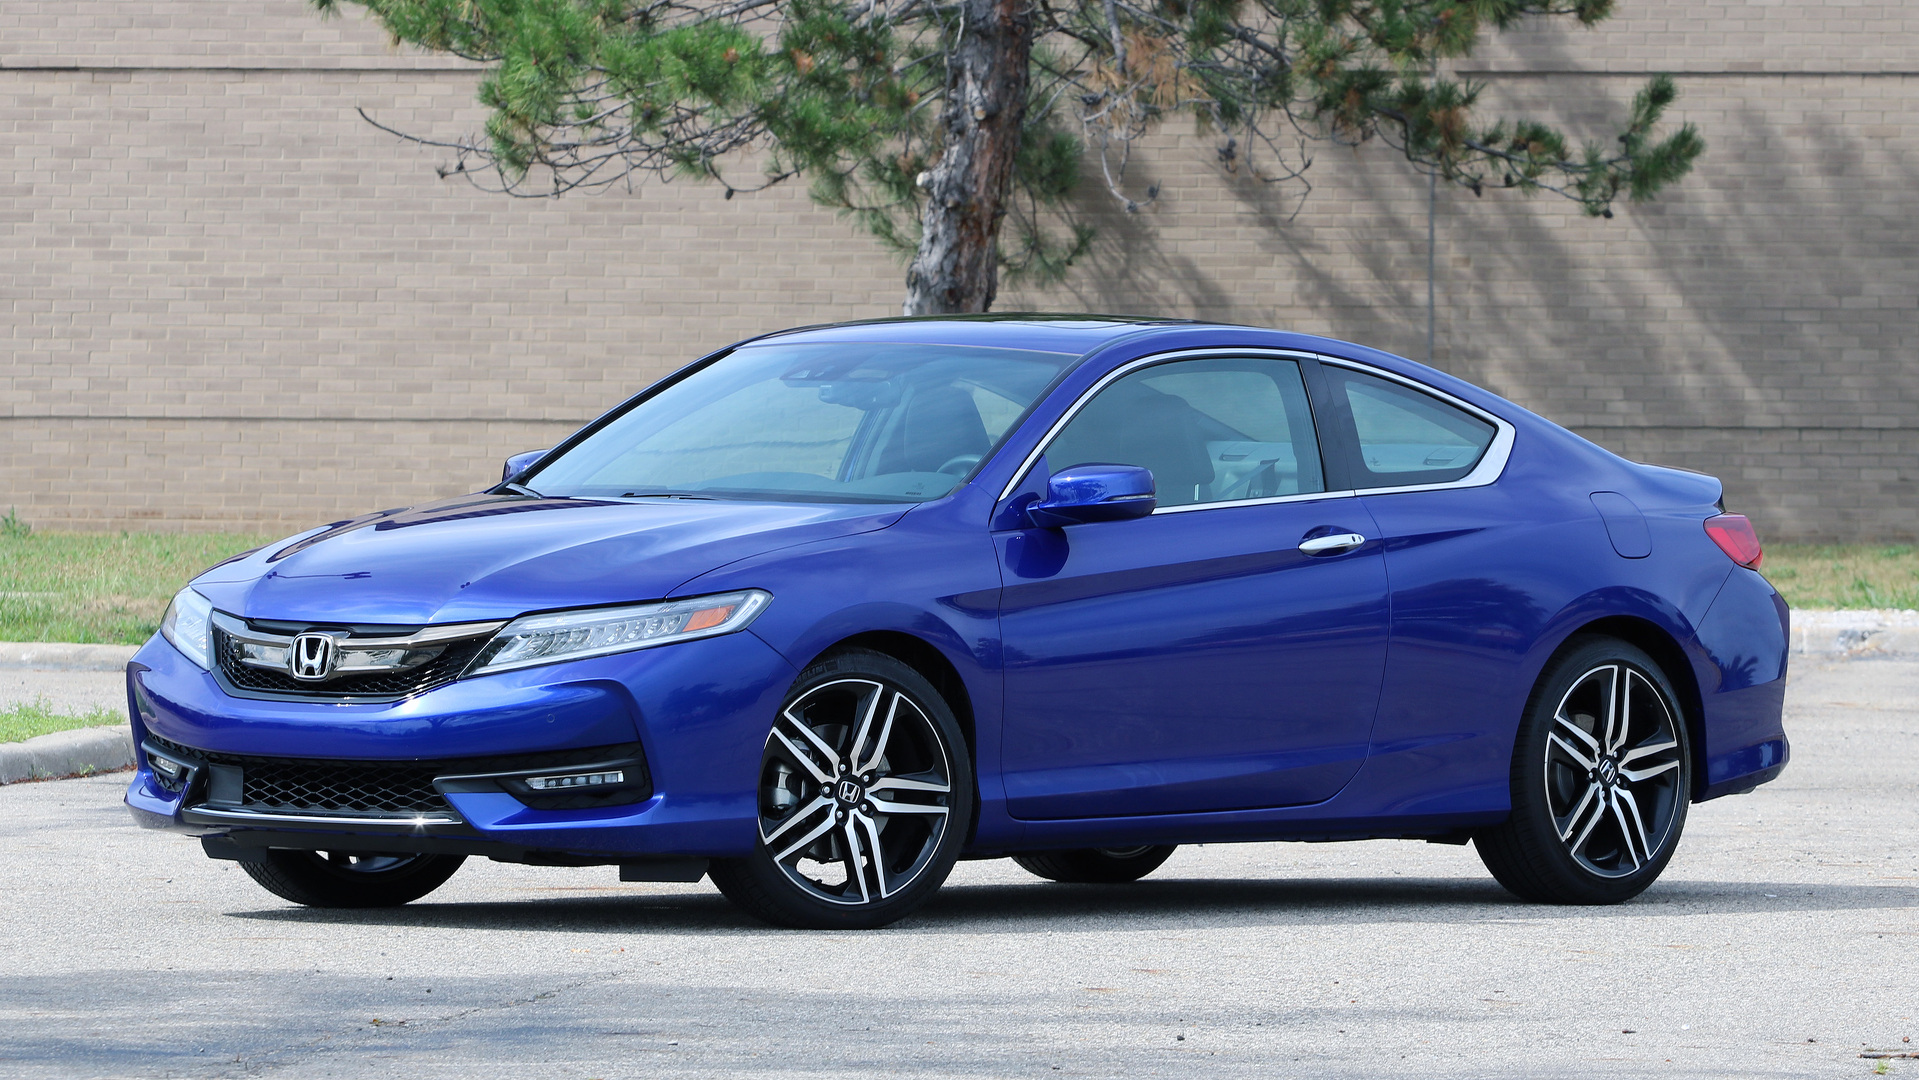 Review: 2017 Honda Accord Coupe V6 | Motor1.com